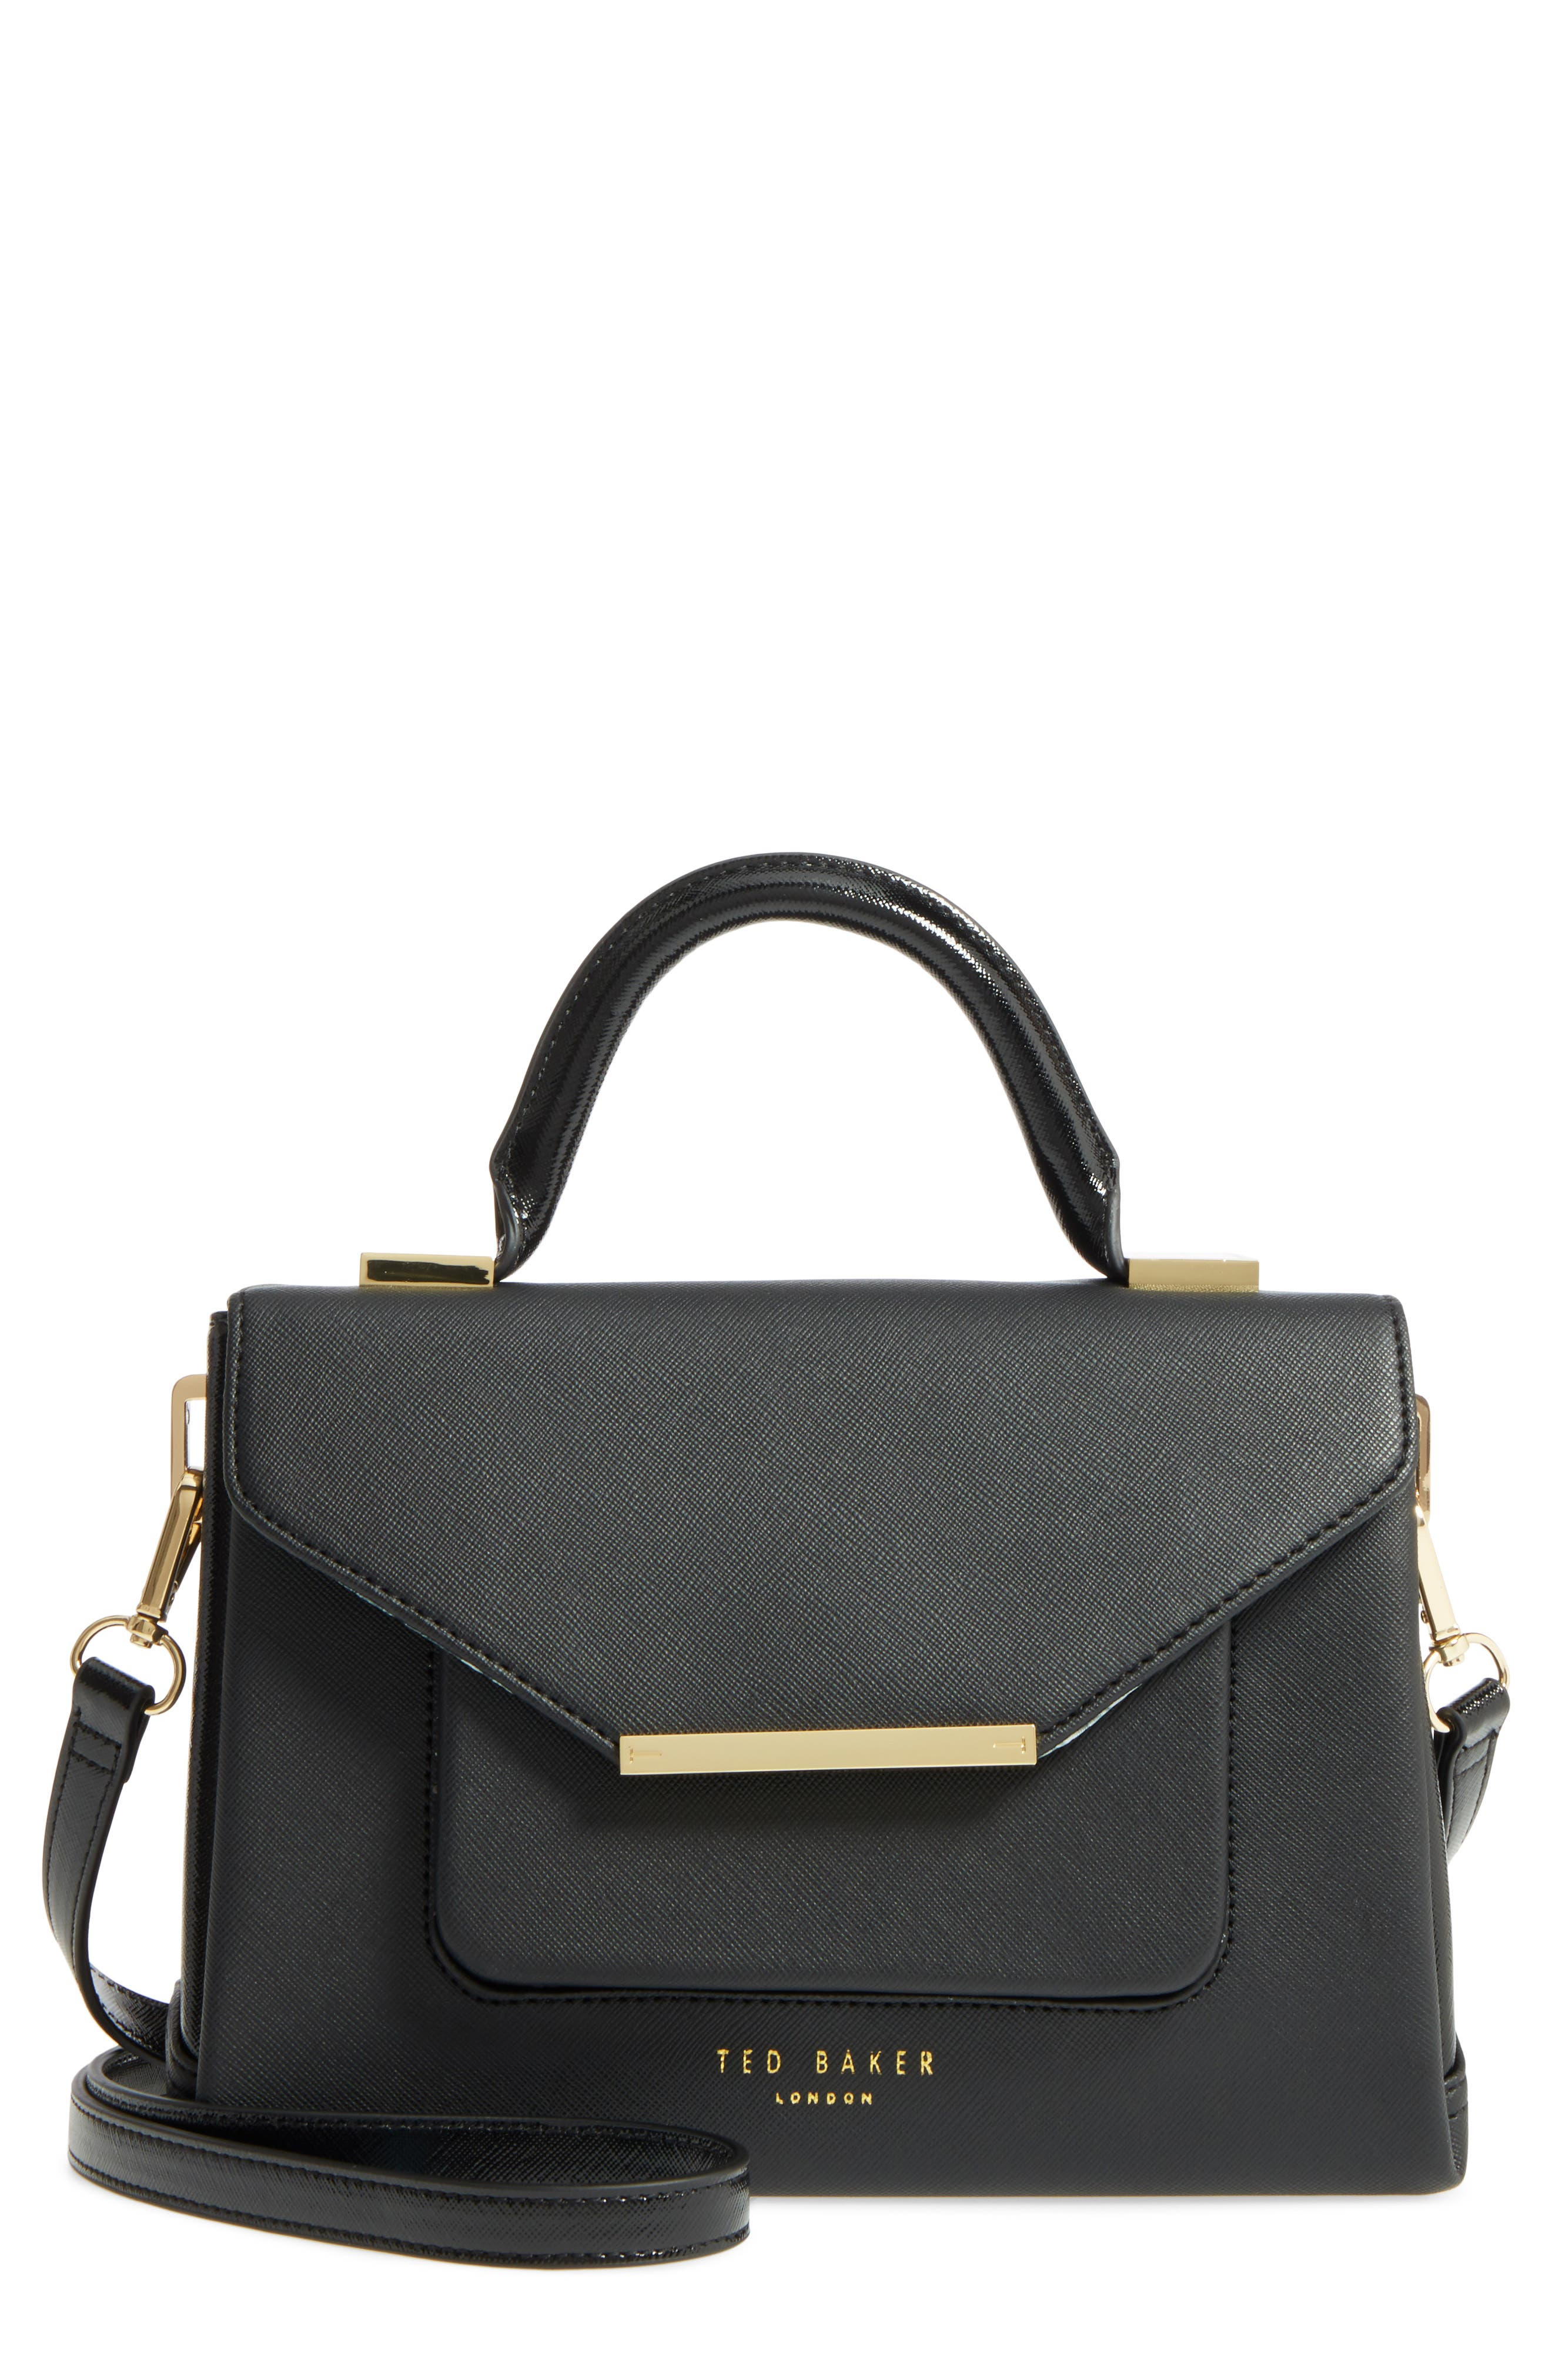 Ted Baker London Faux Leather Satchel